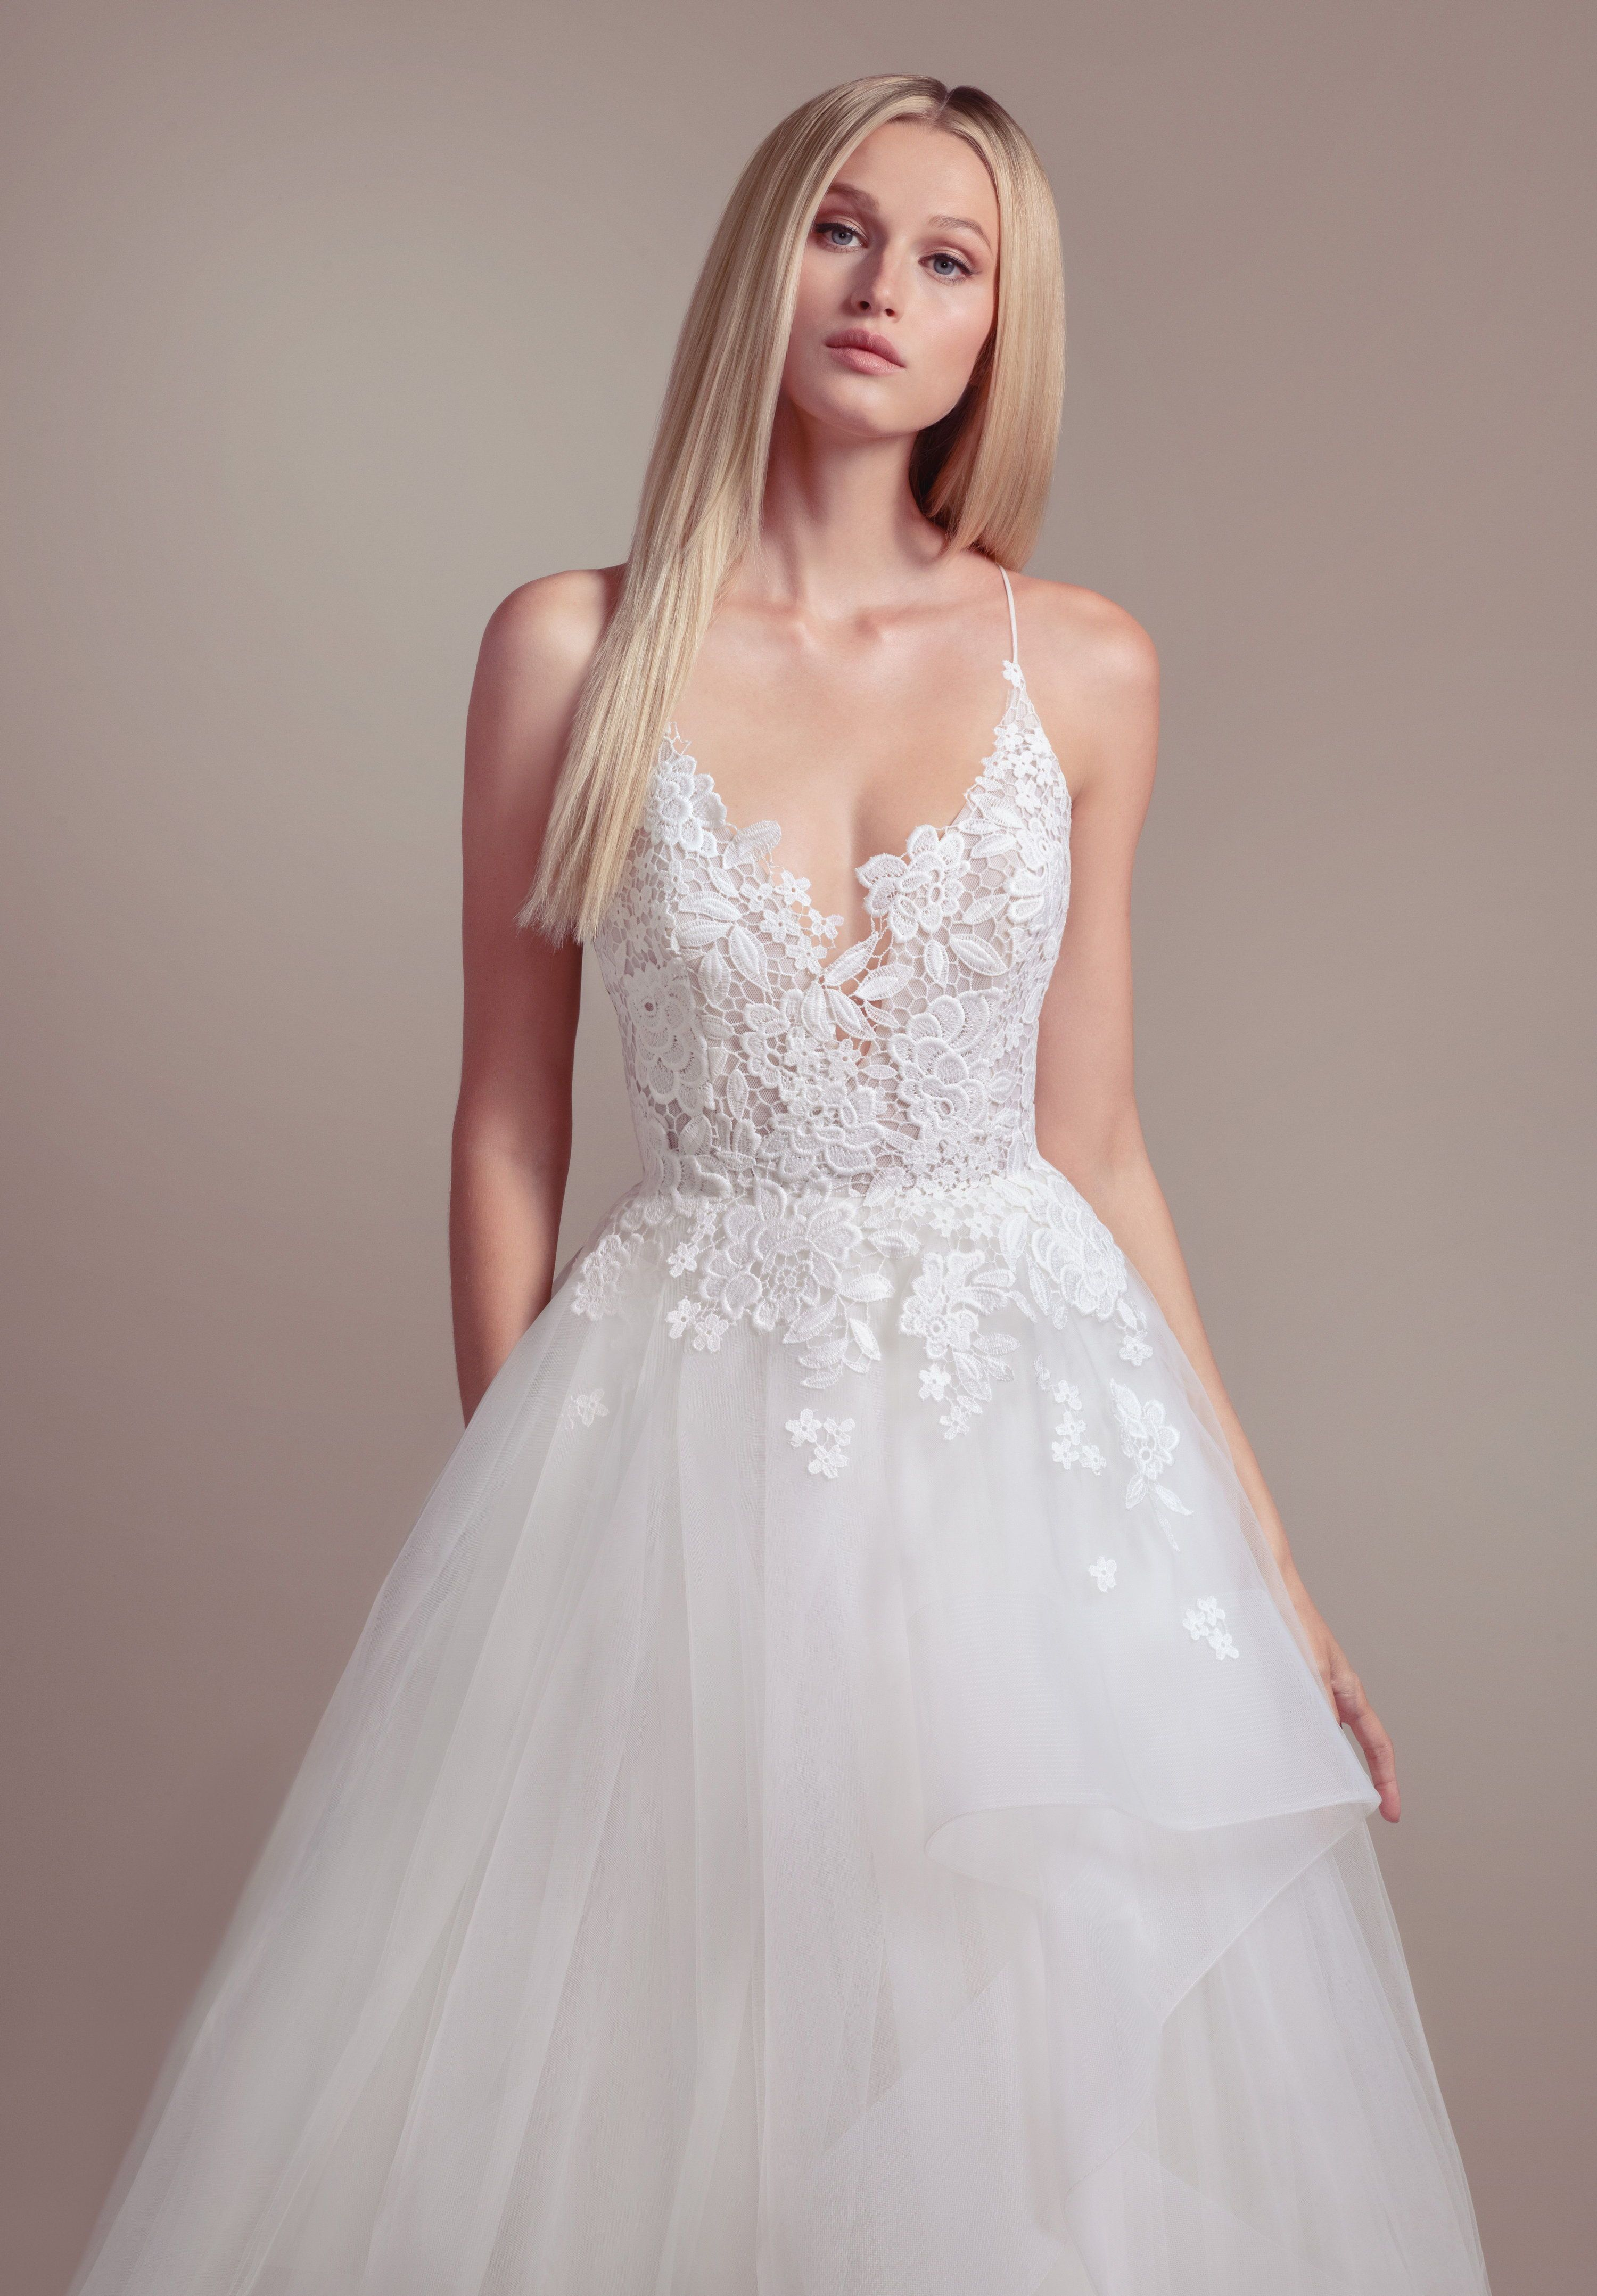 Pin By A Be Bridal Shop On The Dress In 2020 Wedding Dress Styles Spring Wedding Dress A Line Wedding Dress